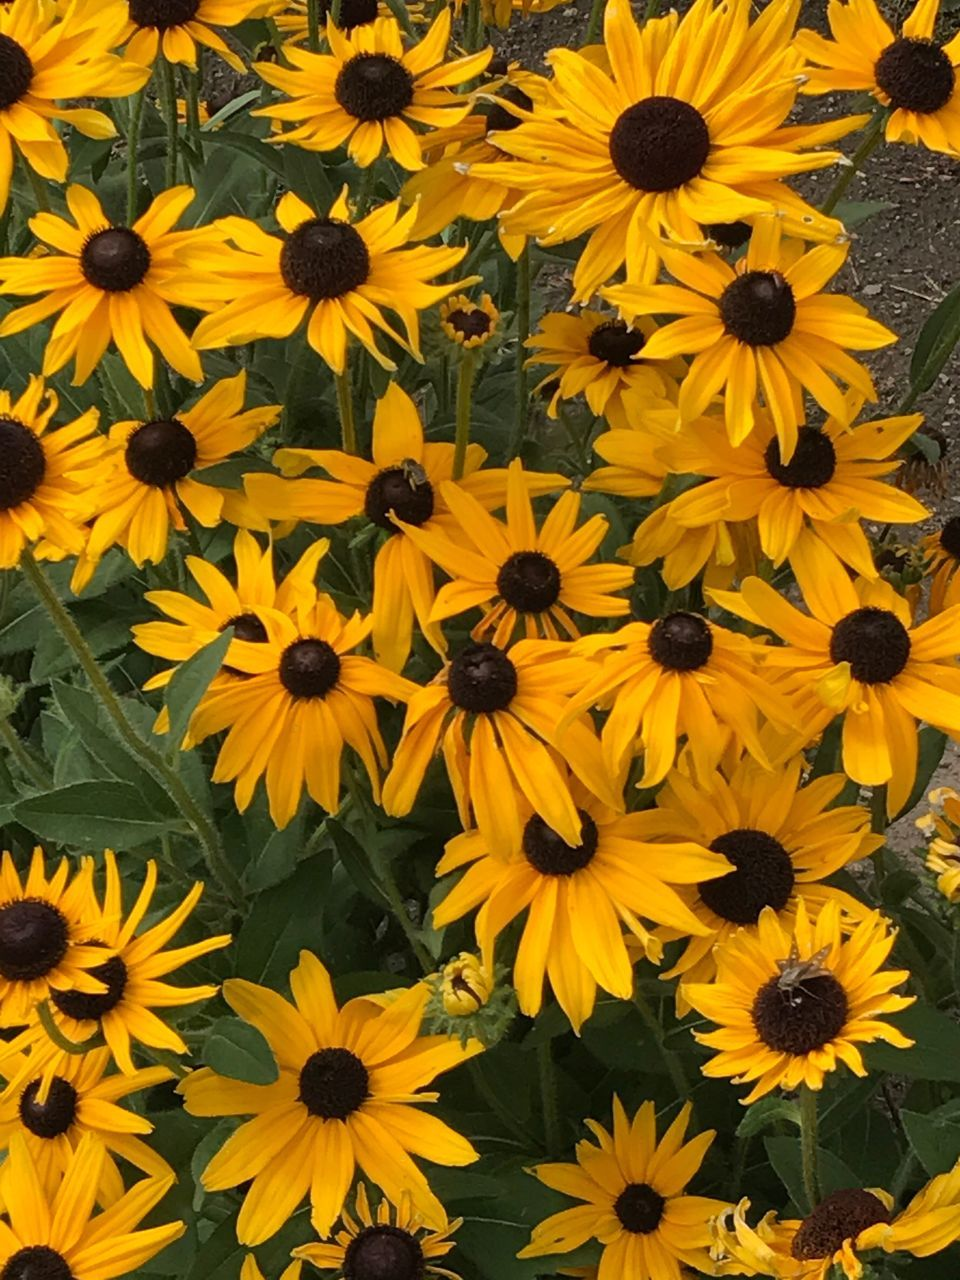 flower, yellow, petal, flower head, fragility, nature, beauty in nature, high angle view, field, freshness, blooming, no people, black-eyed susan, plant, growth, full frame, day, outdoors, close-up